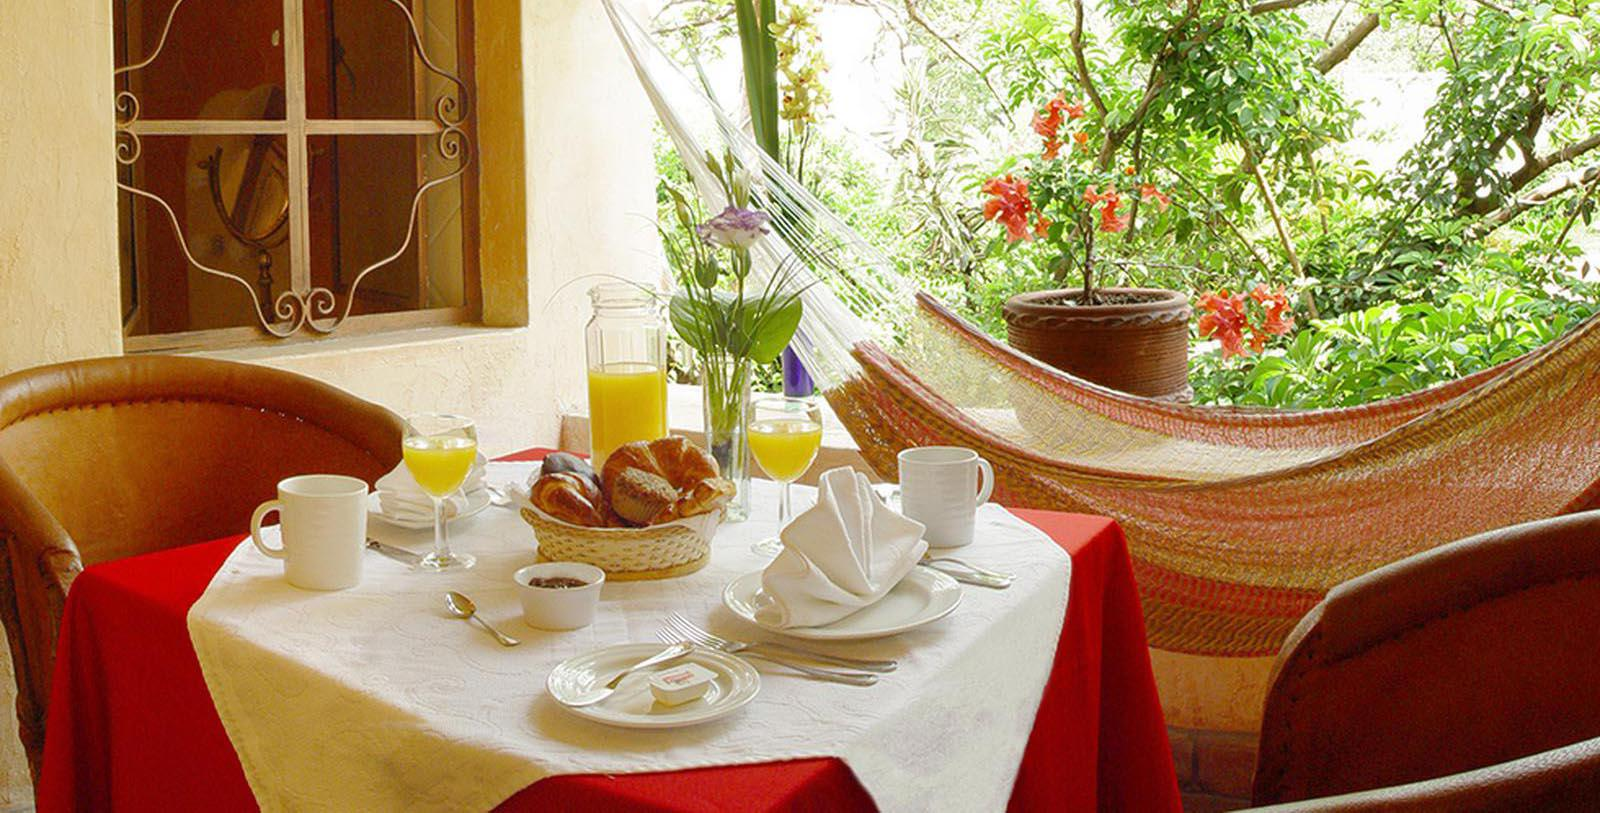 Image of Breakfast Served on Terrace Dining Table at Villa Ganz Boutique Hotel, 1930, Member of Historic Hotels Worldwide, in Guadalajara, Jalisco, Mexico, Taste